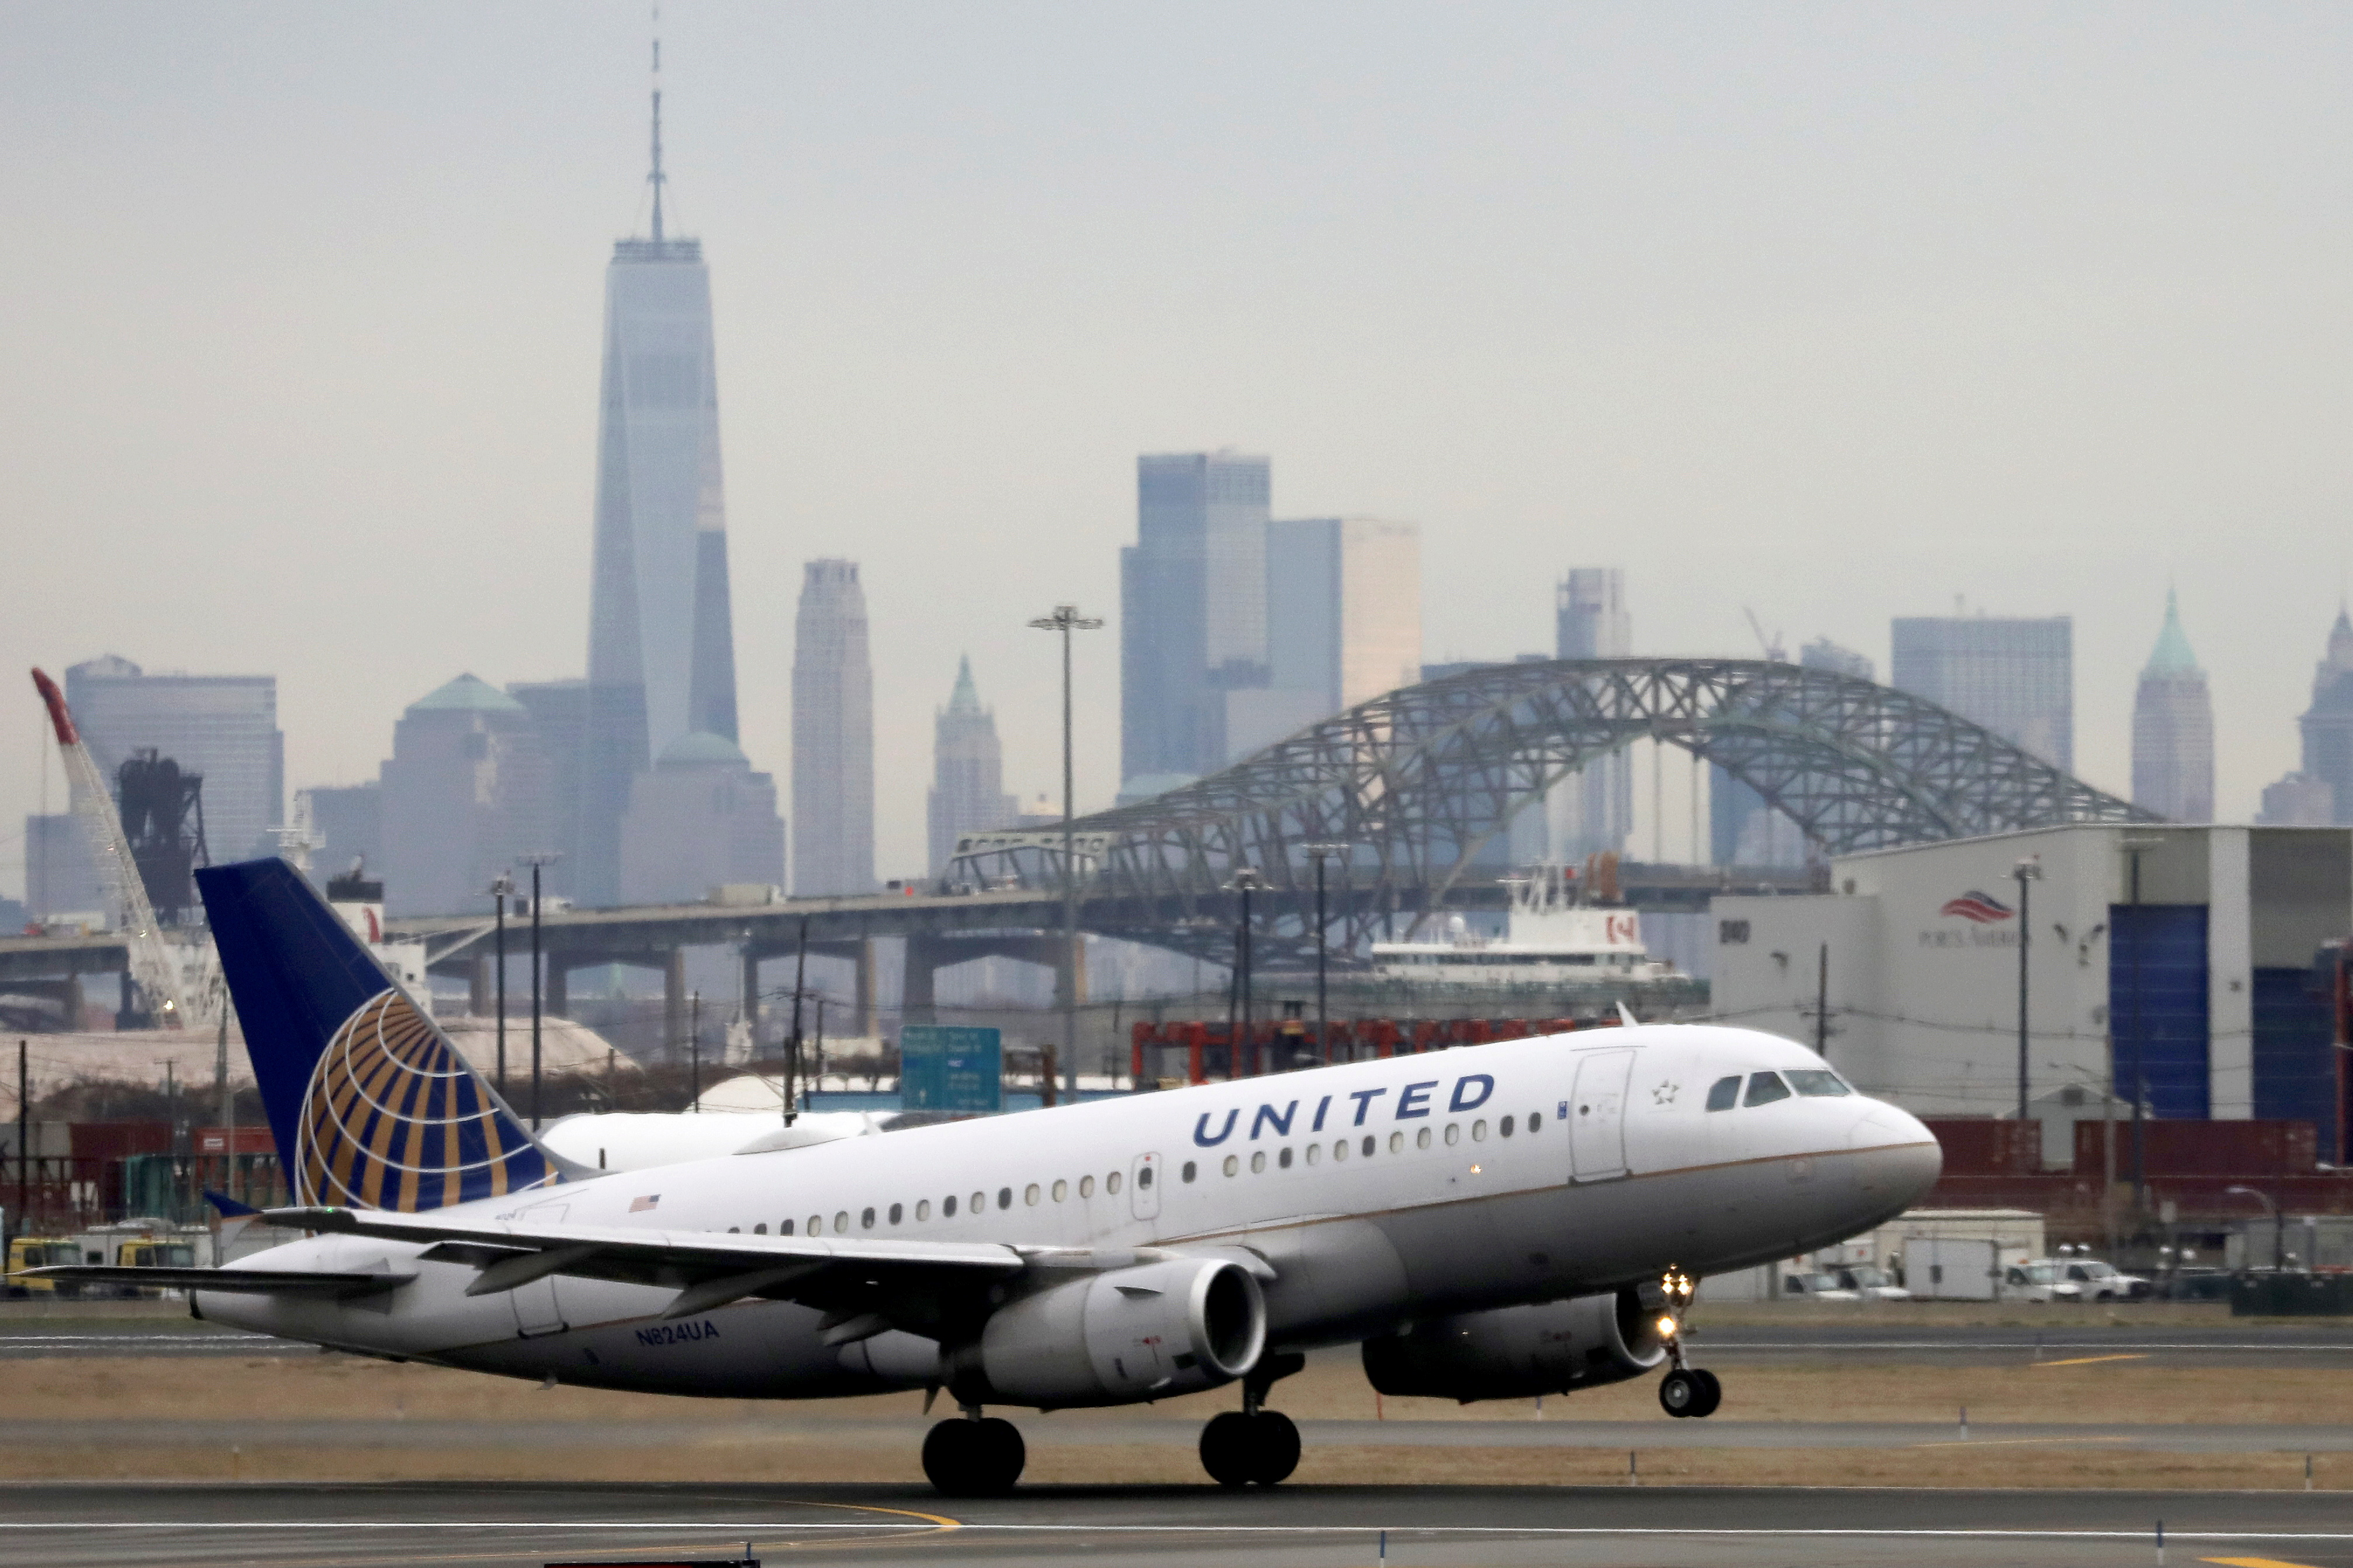 A United Airlines passenger jet takes off with New York City as a backdrop, at Newark Liberty International Airport, New Jersey, U.S. December 6, 2019. REUTERS/Chris Helgren/File Photo